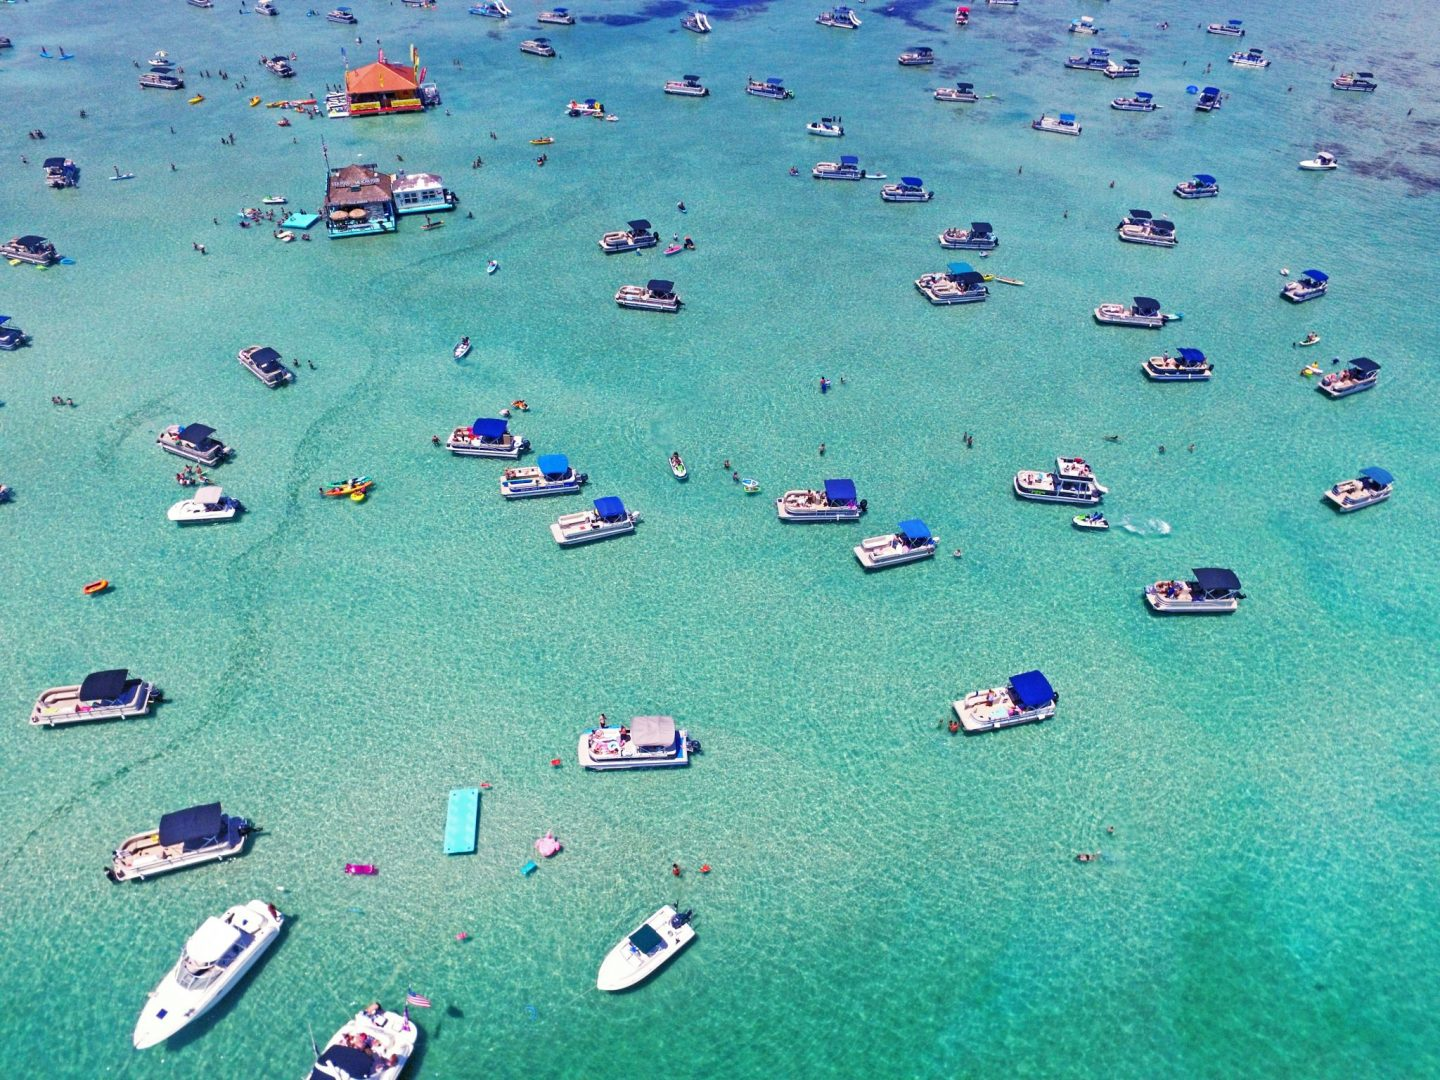 KEY THINGS TO KNOW ABOUT CRAB ISLAND IN DESTIN